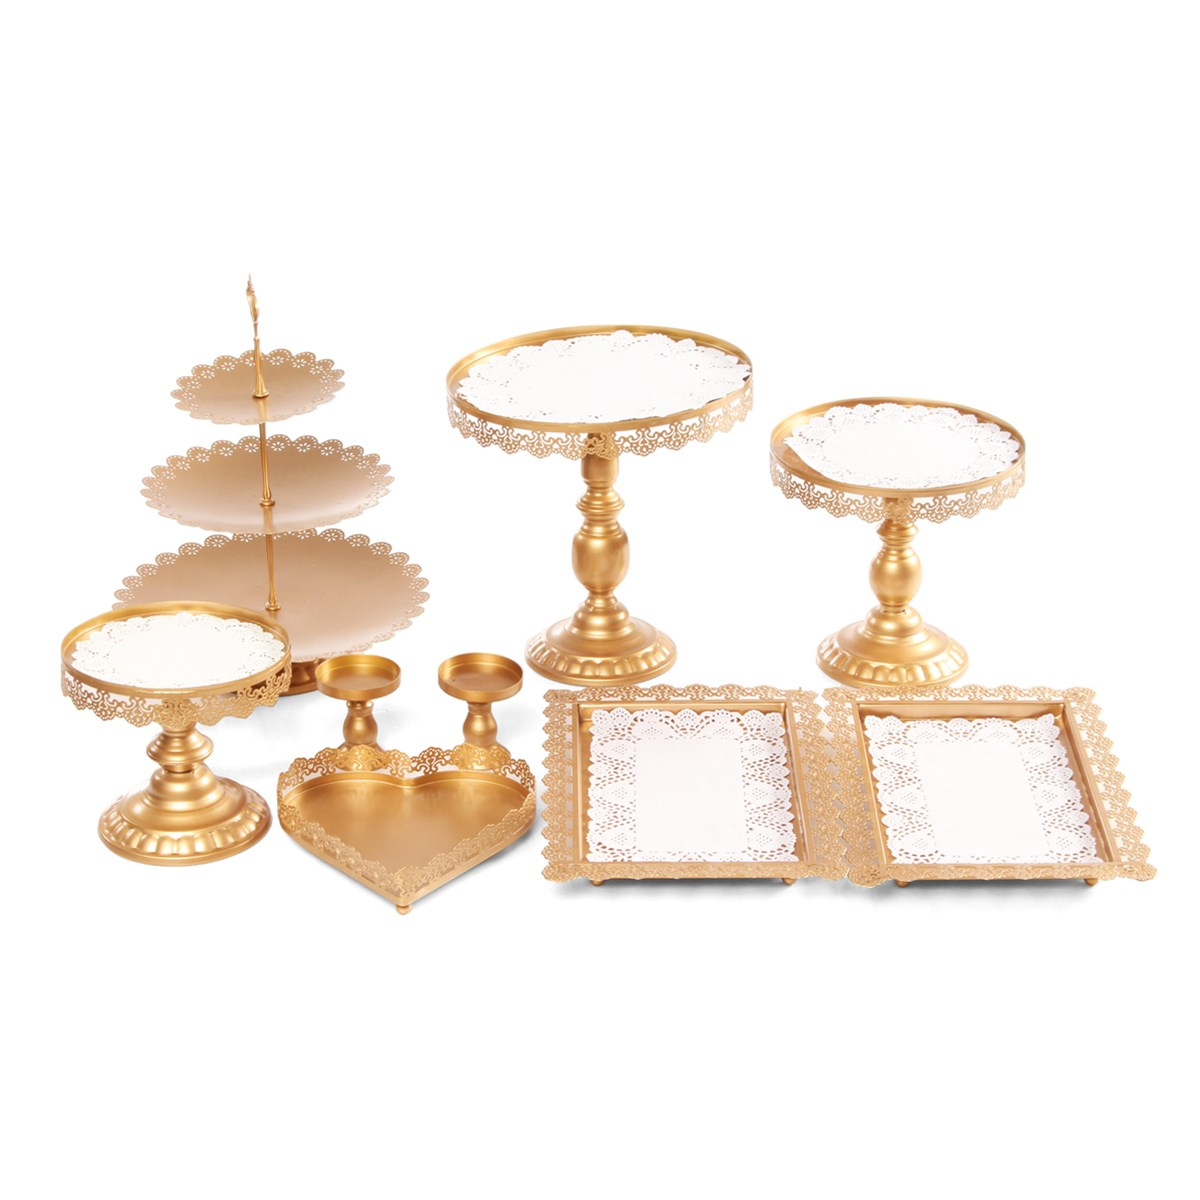 Vintage 9Pcs/Set Cake Stands Cupcakes Holder Party Birthday Dessert Display Serving Tray Rack Gifts DIY Wedding Decorations